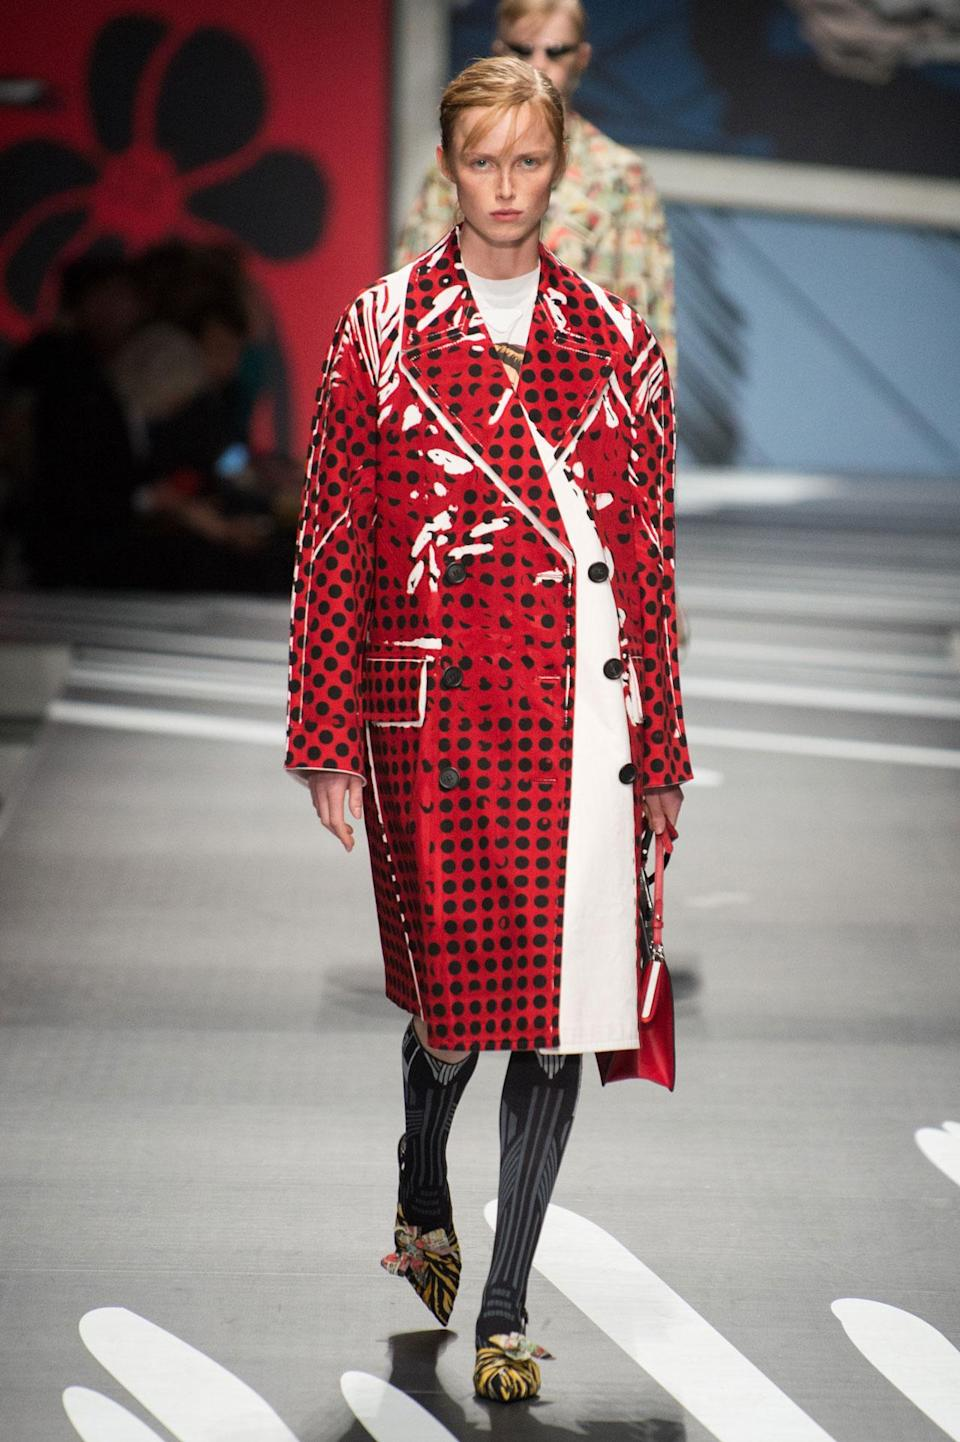 <p>Red and black polka dot patent leather coat from the SS18 Prada collection. (Photo: ImaxTree) </p>